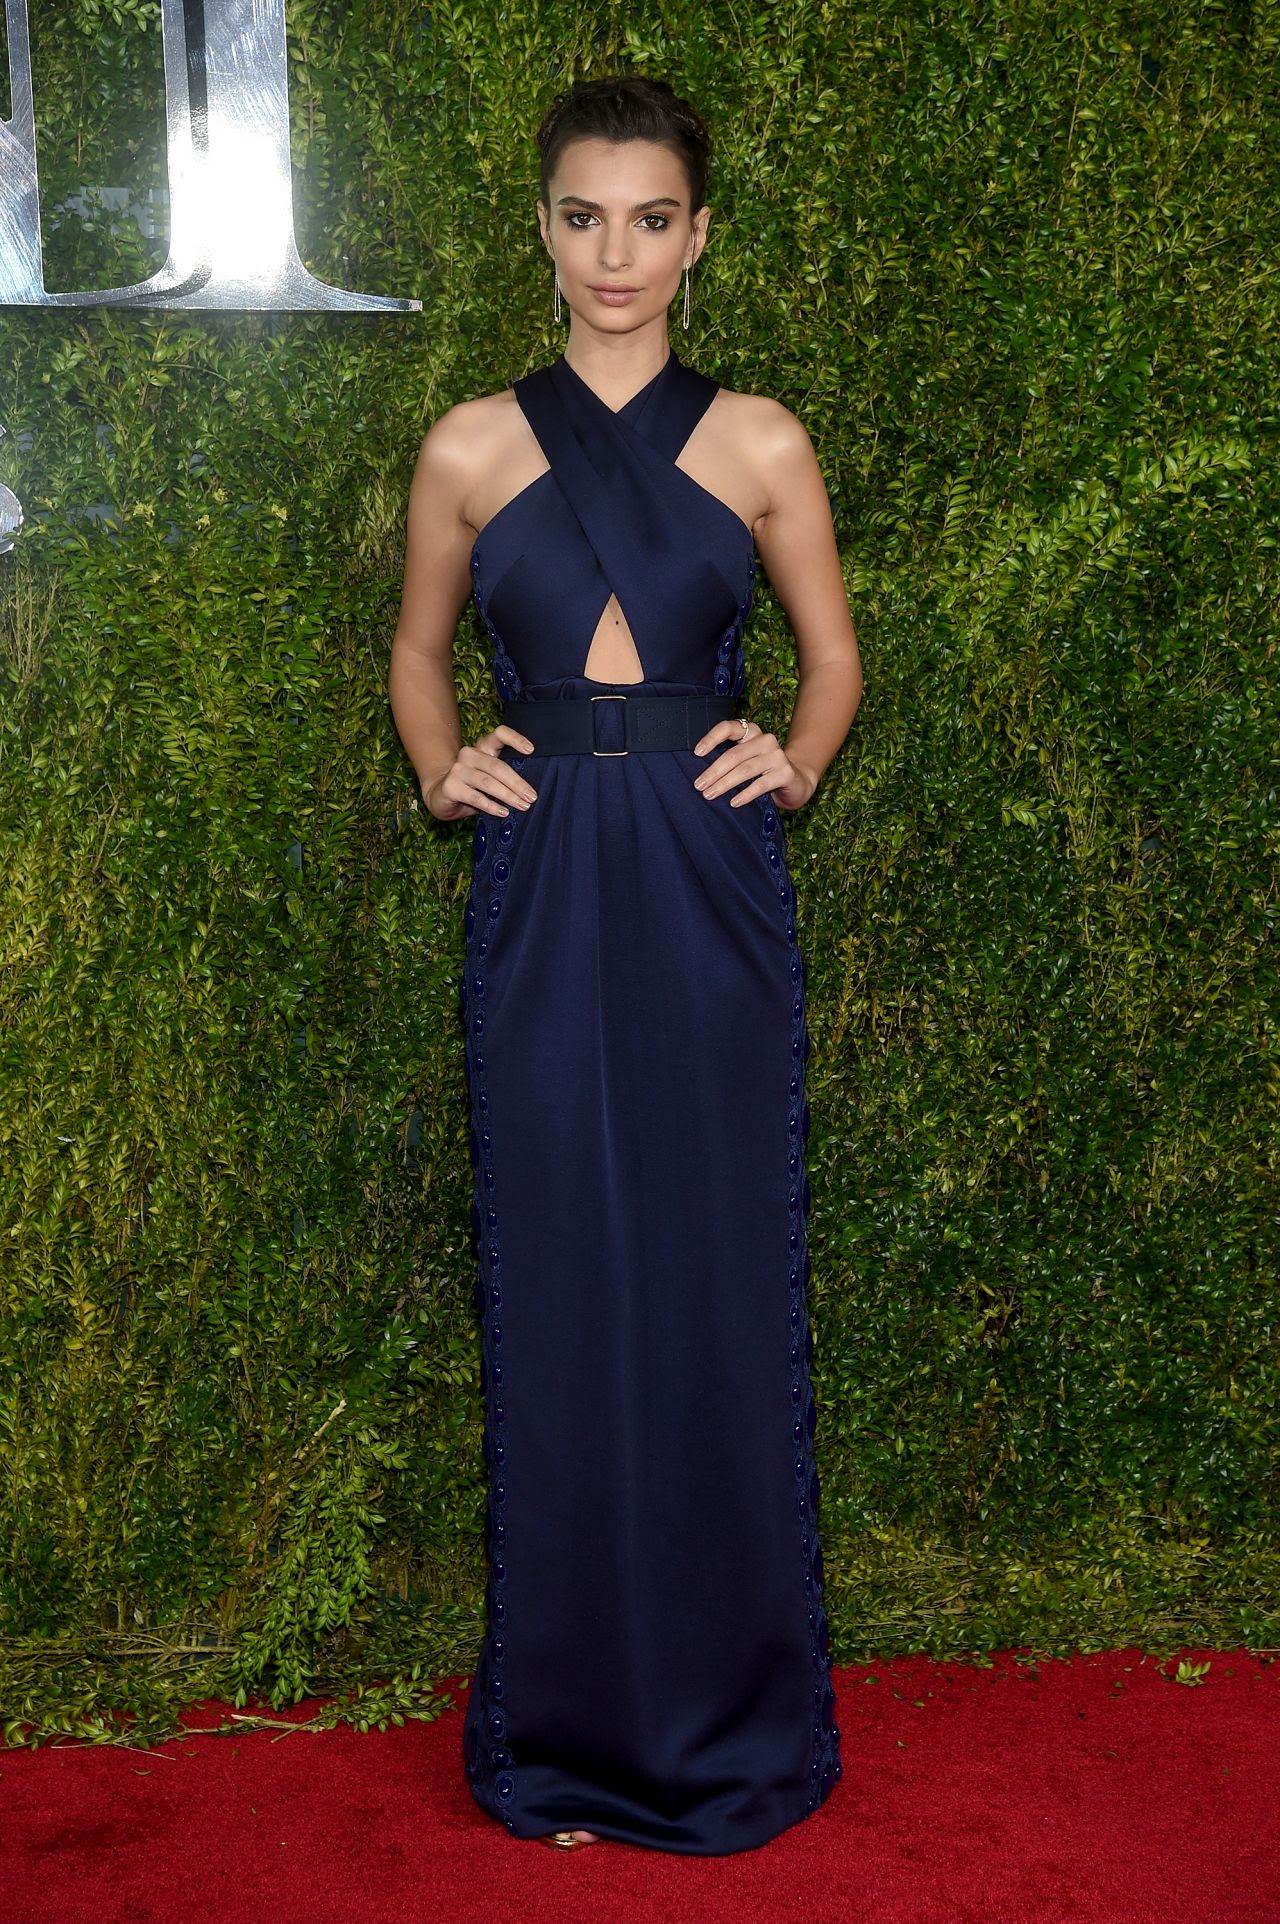 http://fashionsizzle.com/wp-content/uploads/2015/06/emily-ratajkowski-2015-tony-awards-in-new-york-city_3.jpg